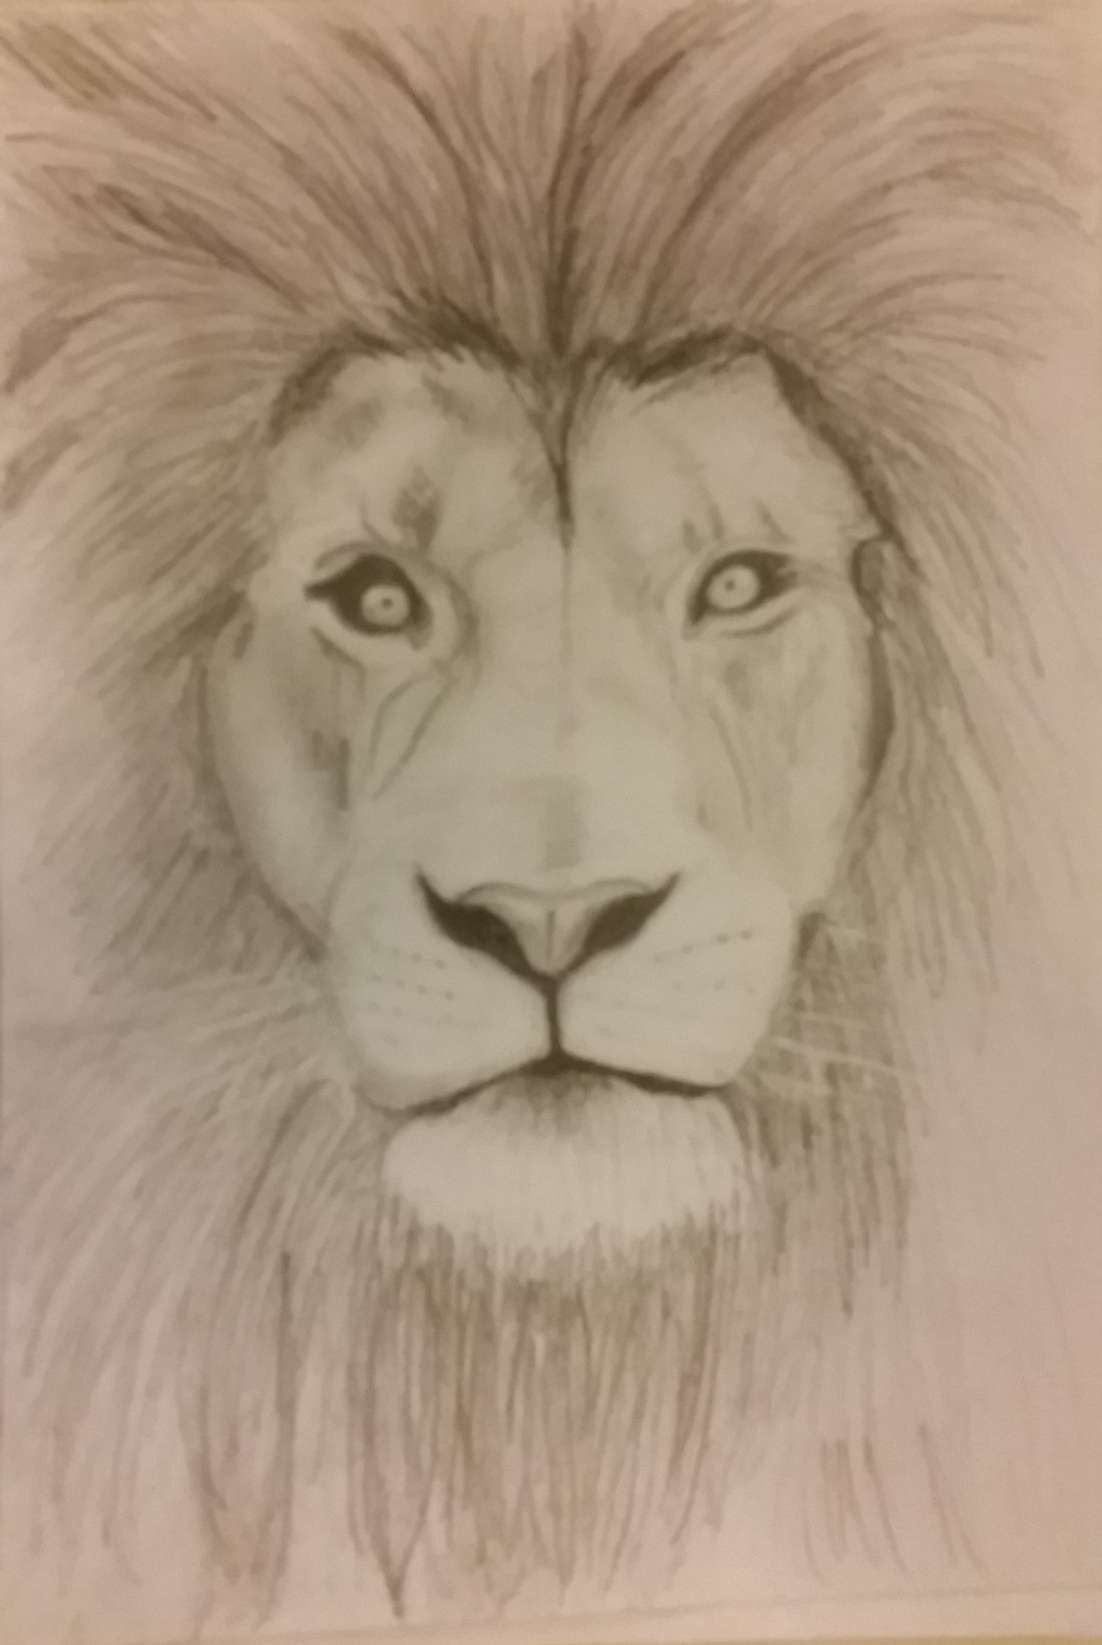 12 Lion Sketches And Drawings Sketch Drawingpencilwiki Com In 2020 Lion Sketch Lion Drawing Simple Pencil Sketches Of Animals